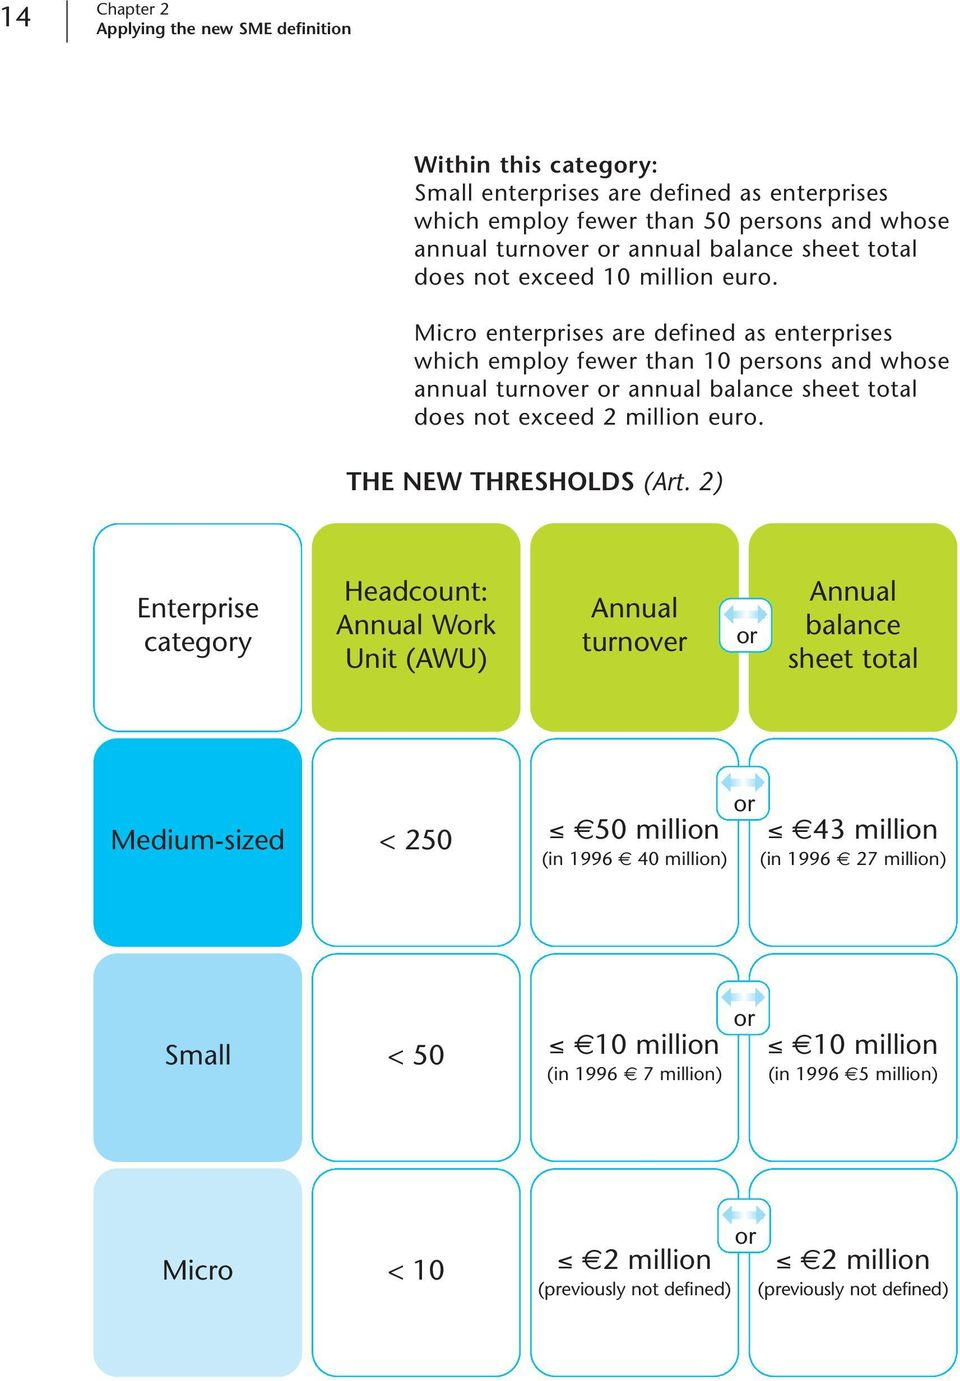 Micro enterprises are defined as enterprises which employ fewer than 10 persons and whose annual turnover or annual balance sheet total does not exceed 2 million euro. THE NEW THRESHOLDS (Art.